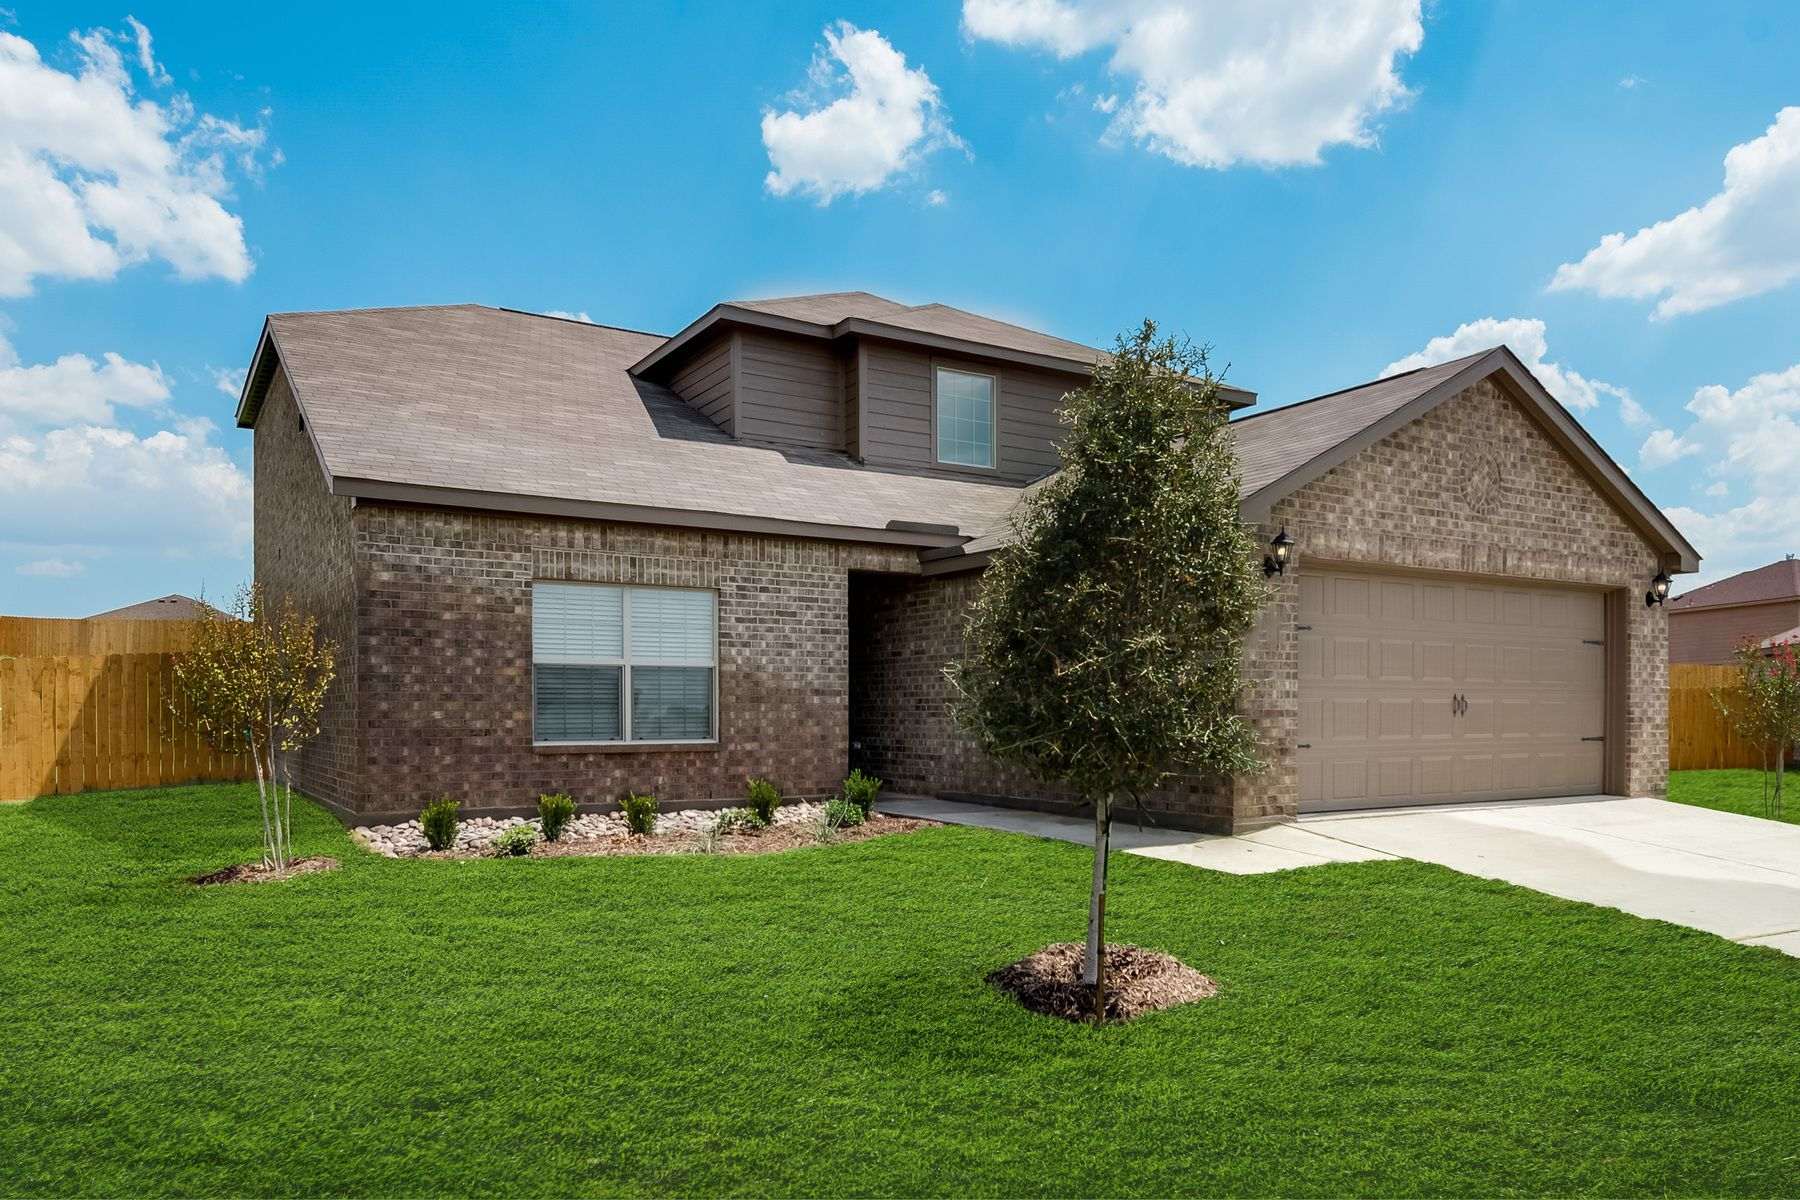 The Cypress Plan by LGI Homes:The Cypress plan has incredible curb appeal.